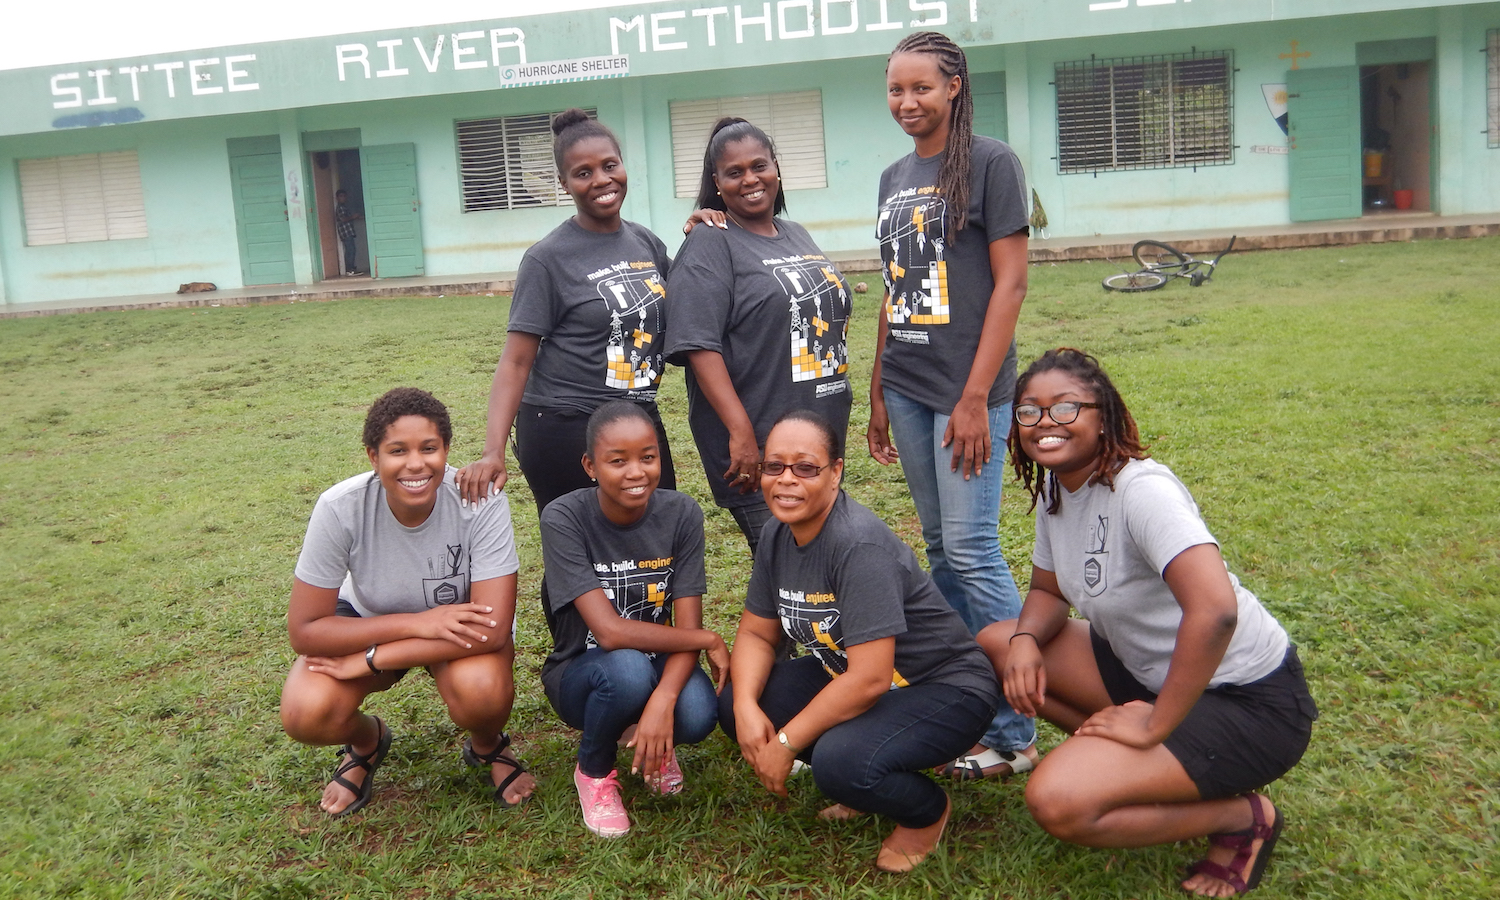 Photo of seven women posing outdoors. Globally Caption: Fulton Schools sustainable engineering doctoral student Evvan Morton (far left) and Shakira Hobbs, an engineering research associate at the University of Virginia (far right), are shown with school teachers in the Belize village of Sittee River. Morton and Hobbs are leaders of a project aimed at helping the remote rural community to adopt renewable energy technology and establish an environmentally safe waste management system. Photo courtesy of Evvan Morton and Shakira Hobbs.